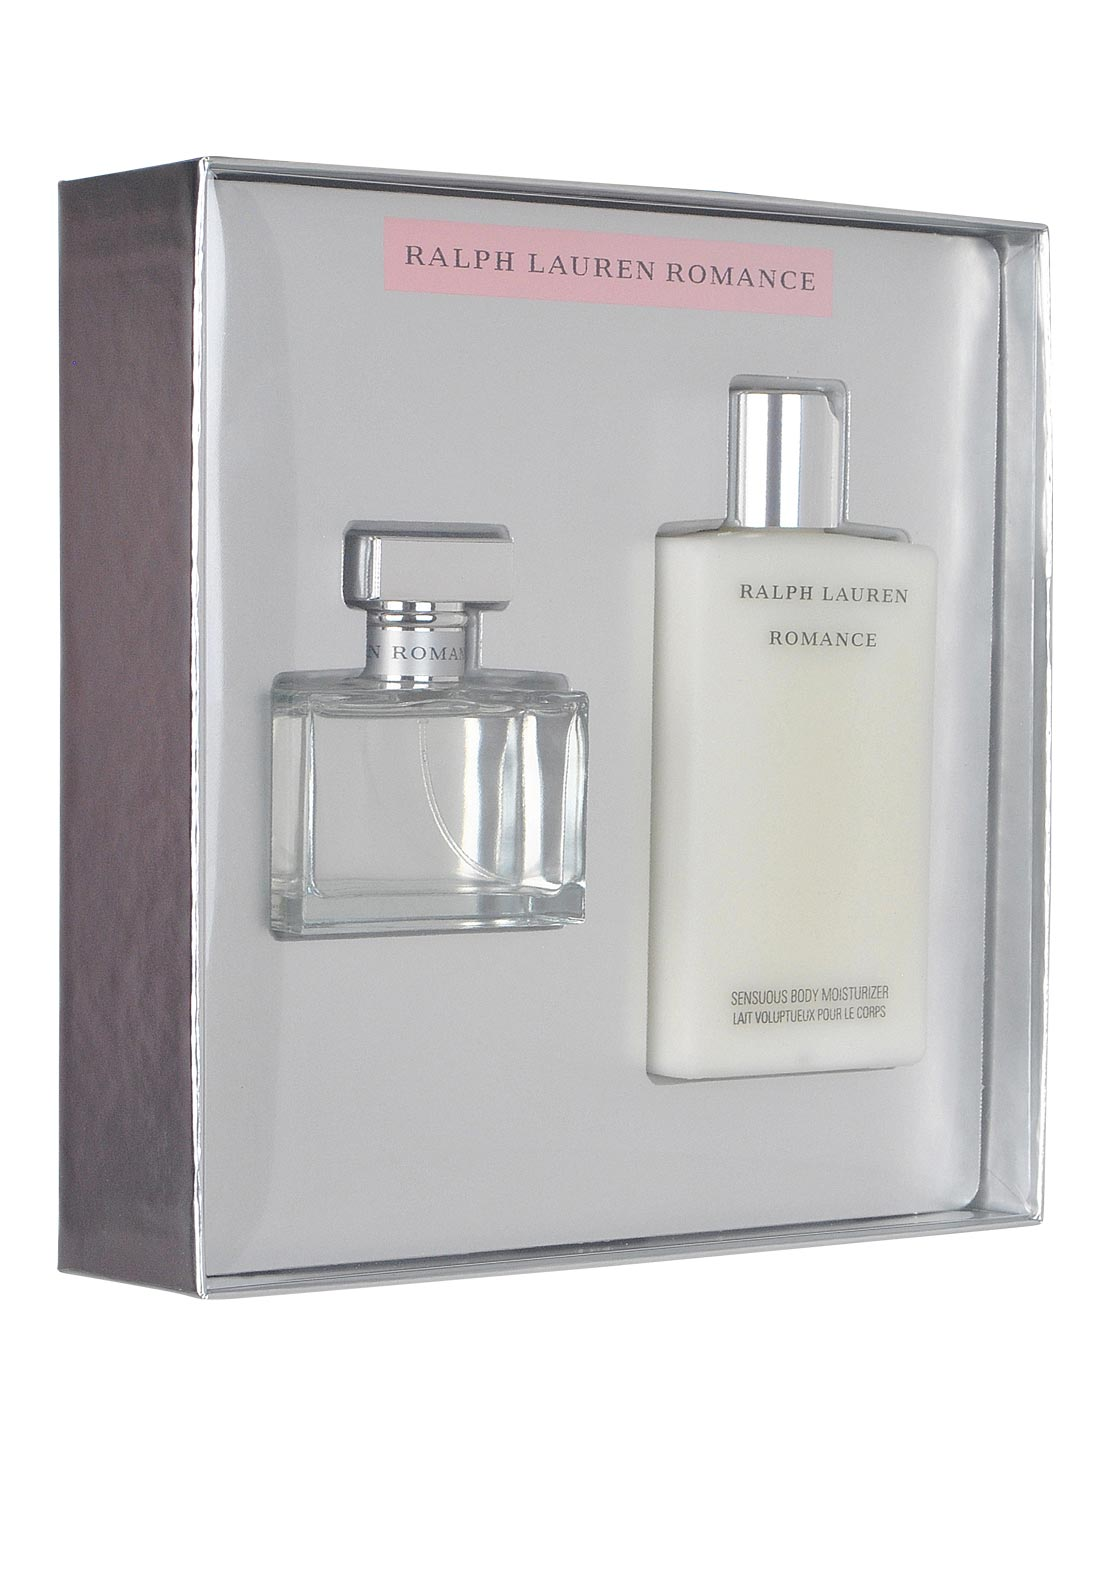 Ralph Lauren Romance Eau De Parfum Gift Set for Women, 50ml